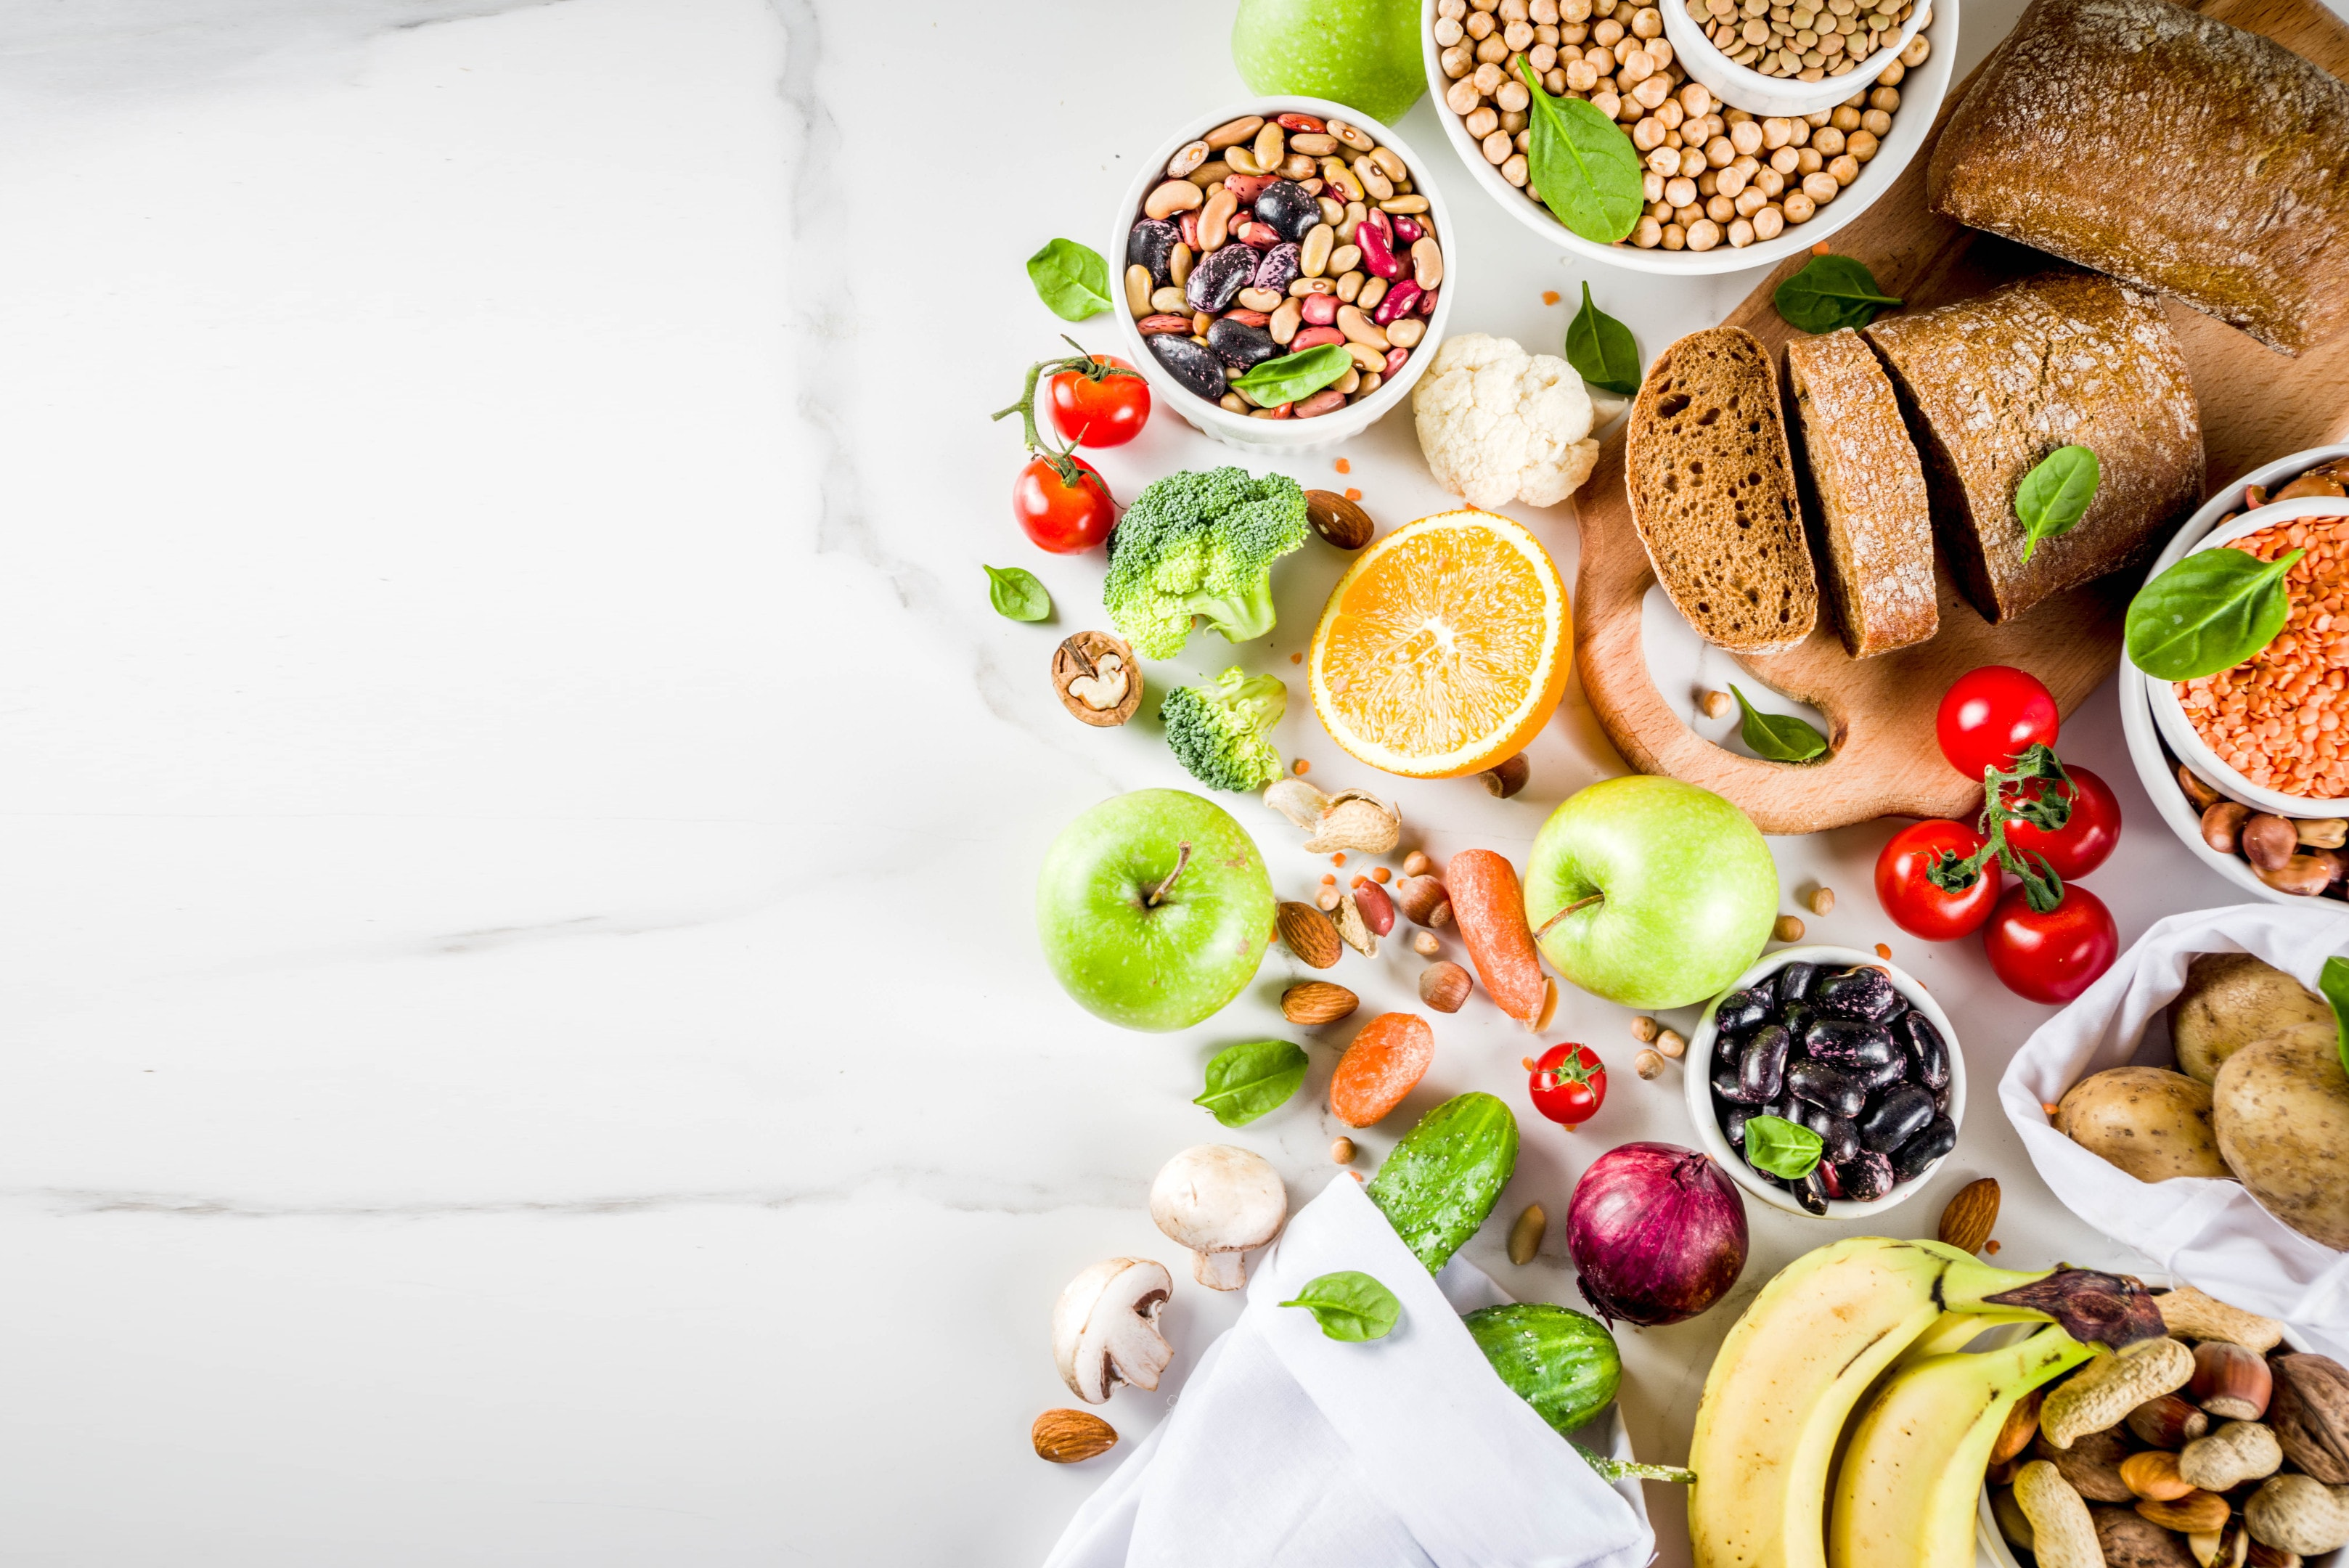 Food with high content of fiber